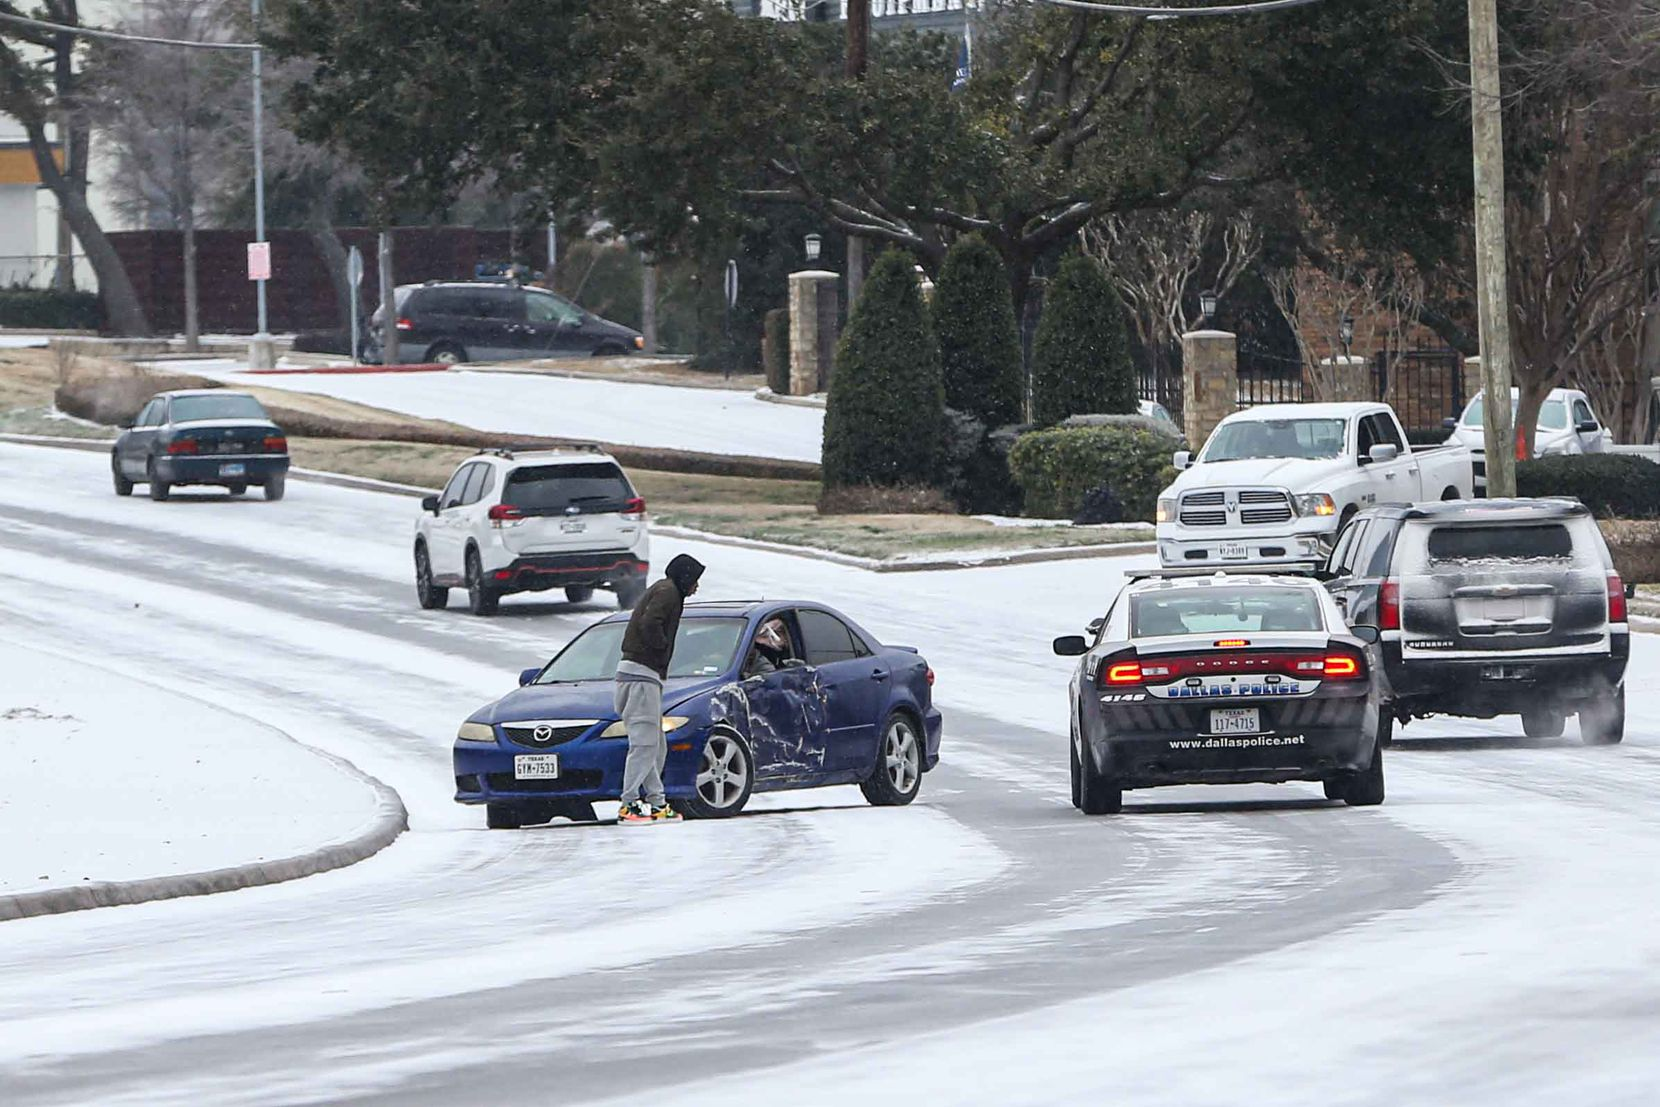 A car crash on TX-12 Loop Northwest near Shady Brook Ln as winter flurries arrive in Dallas on Sunday, February 14, 2021 ahead of major snowstorm.